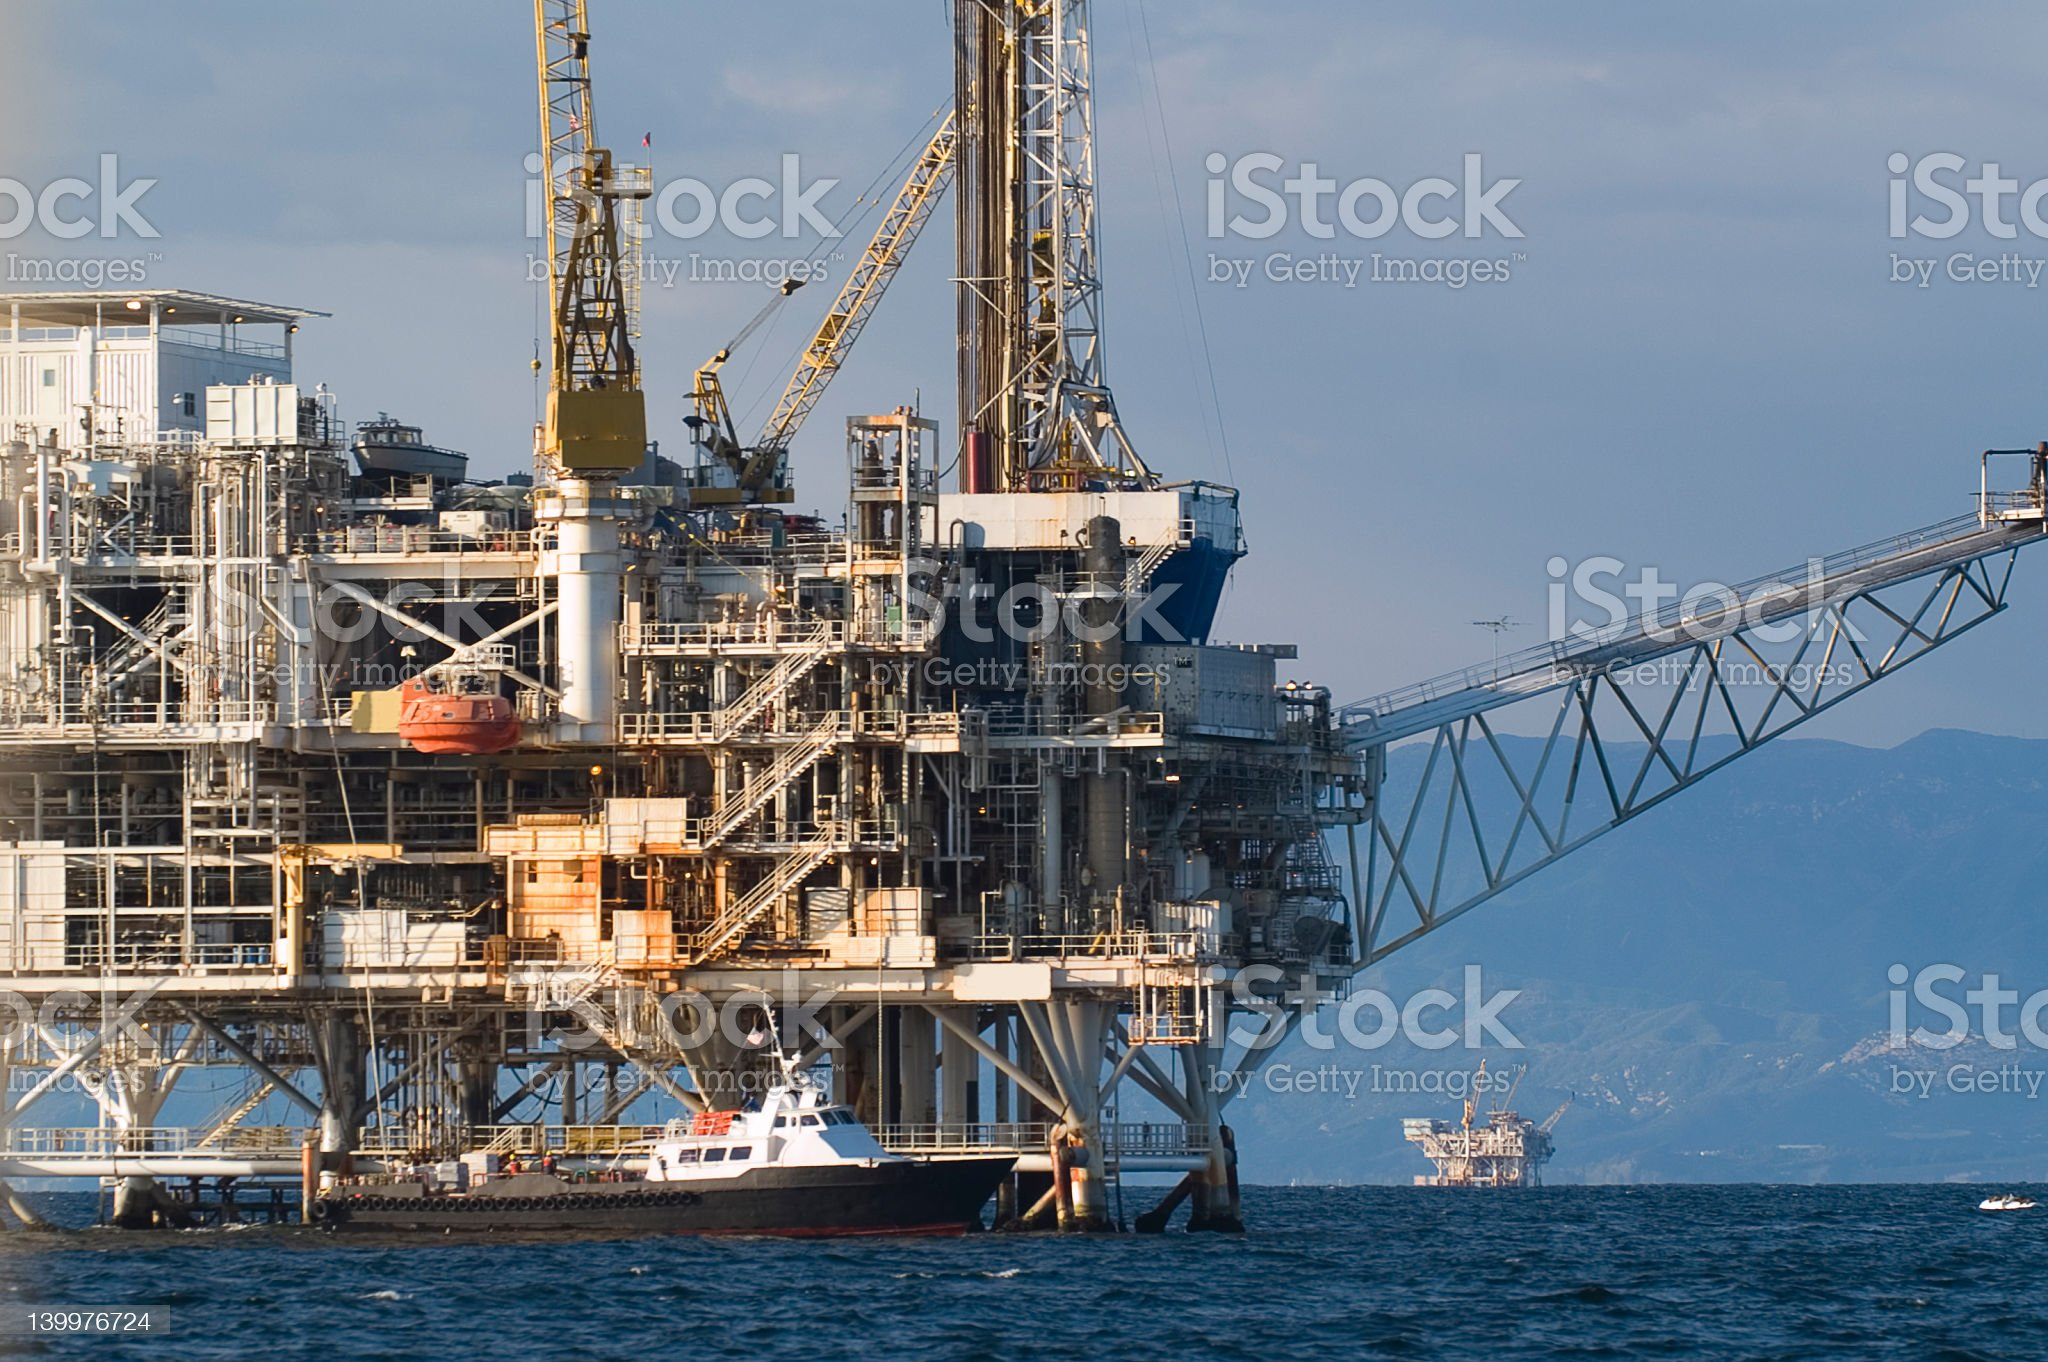 An oil drilling rig in the middle of the ocean royalty-free stock photo